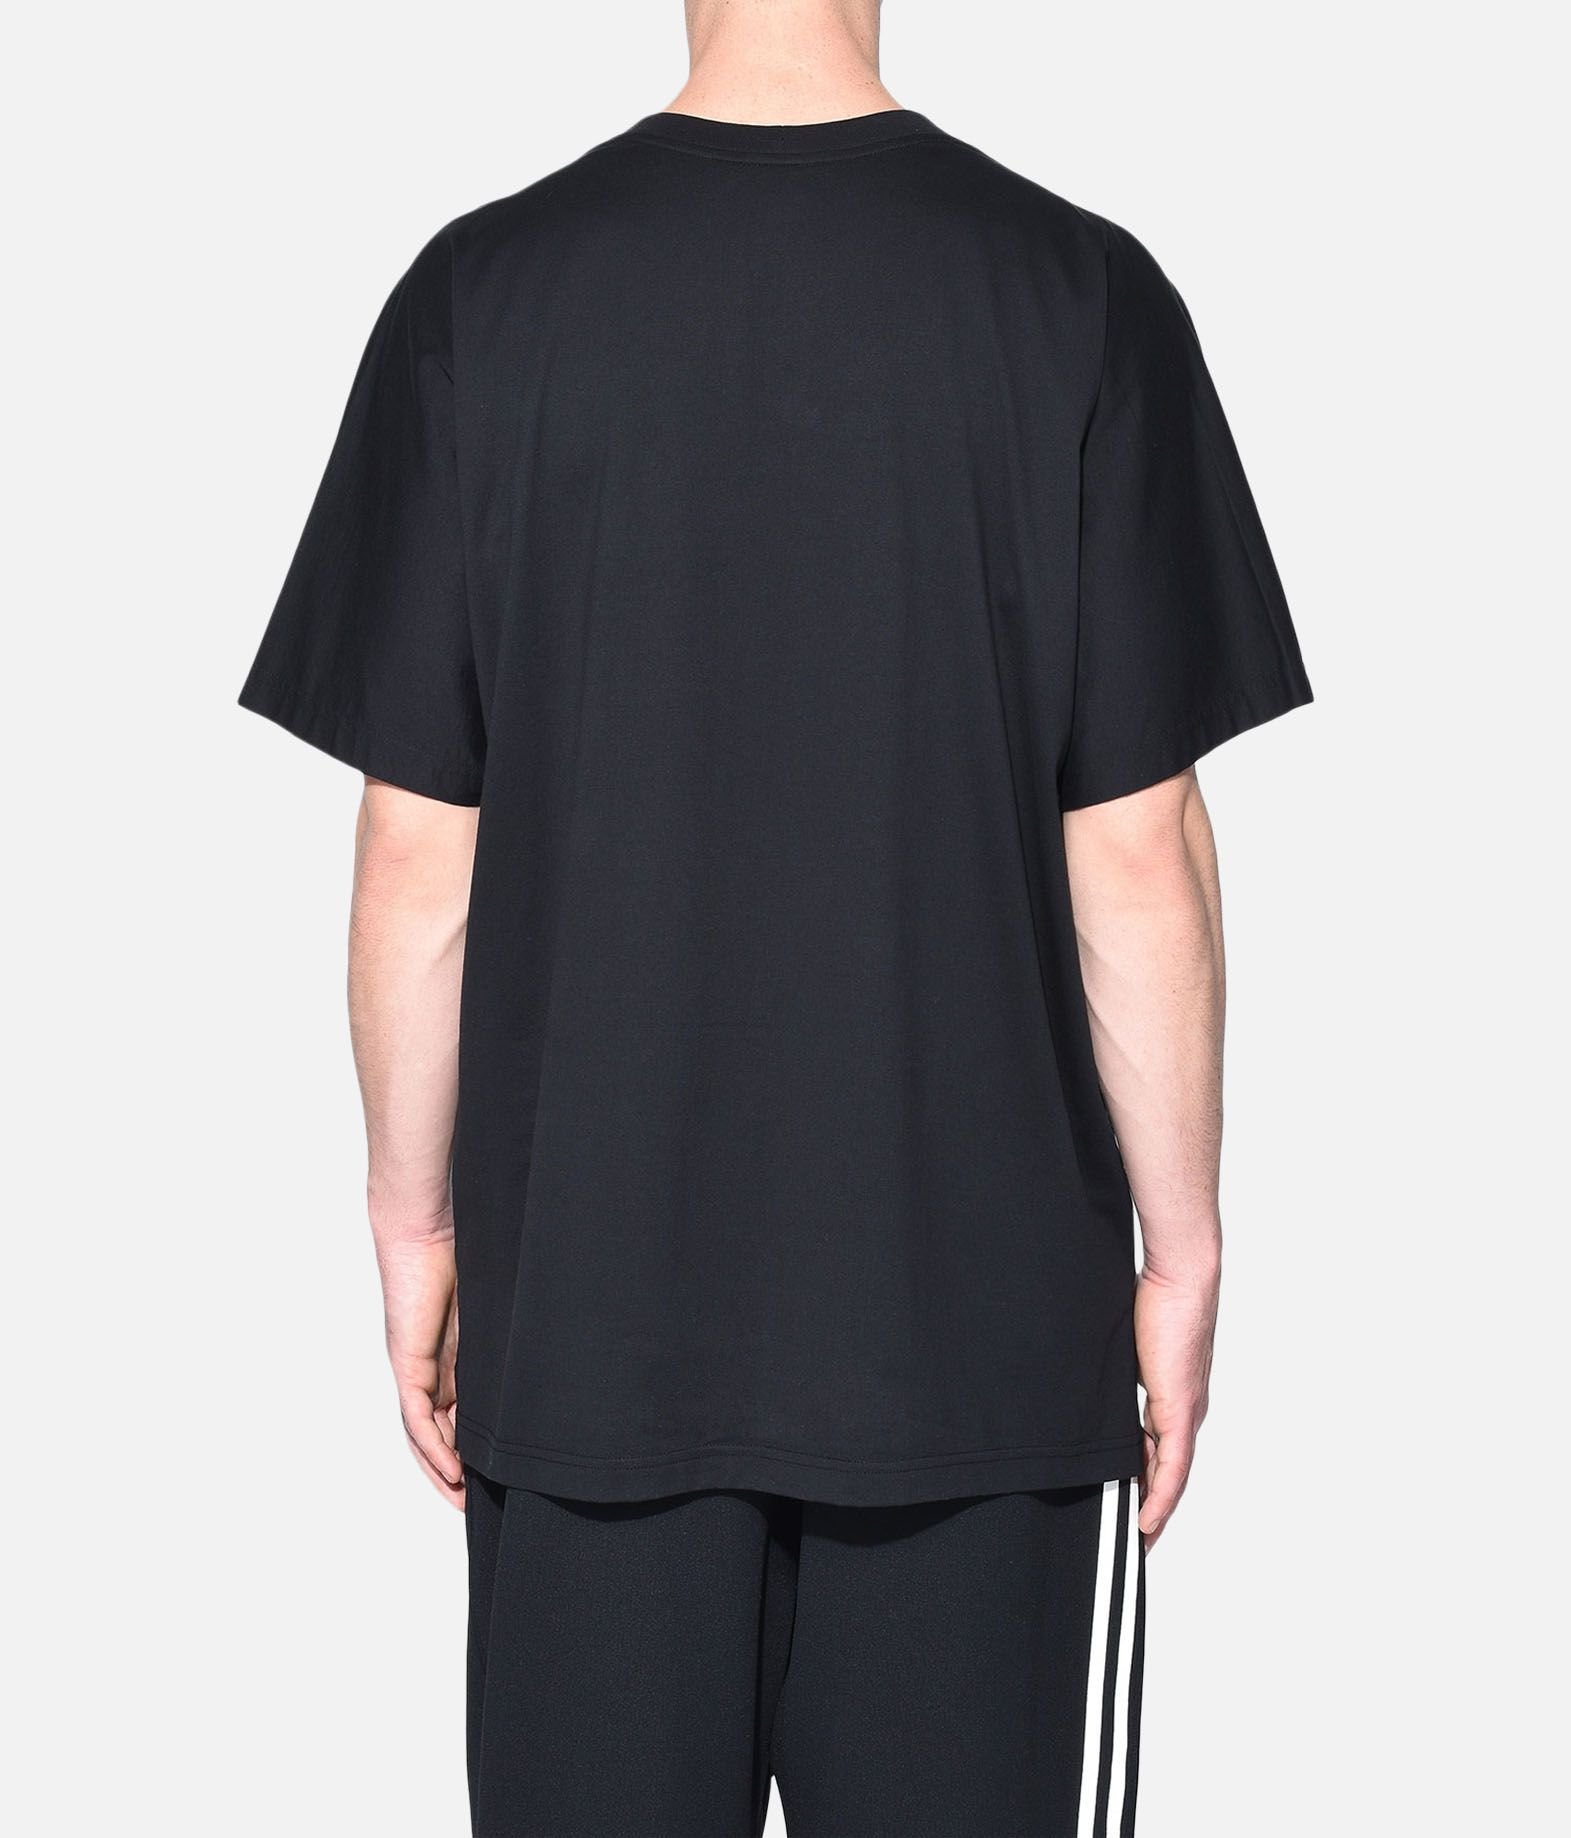 Y-3 Y-3 Signature Tee Short sleeve t-shirt Man e